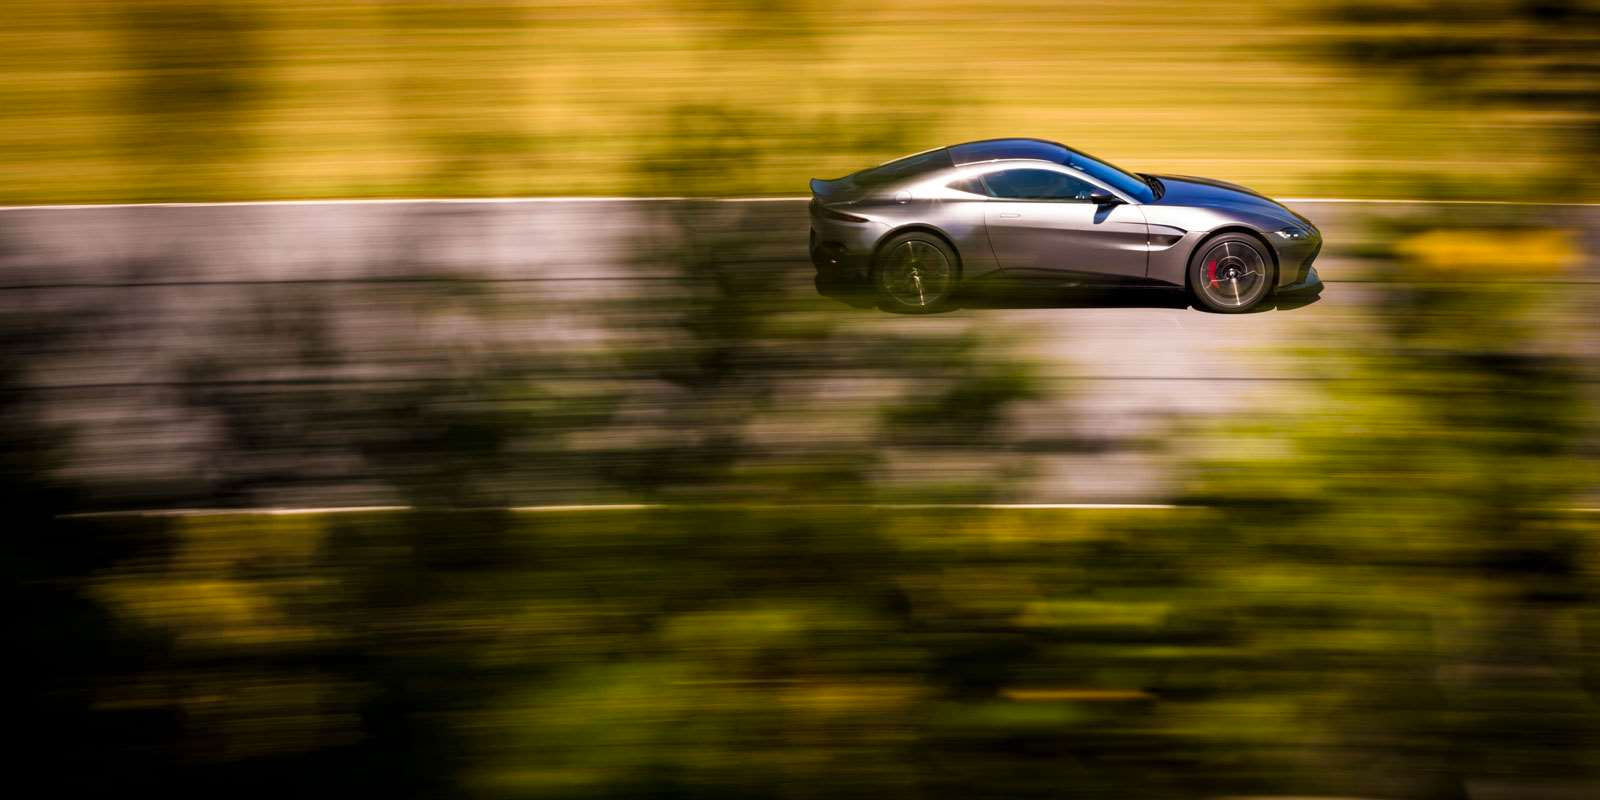 Aston Martin New Vantage - The Archetypal Hunter image 6